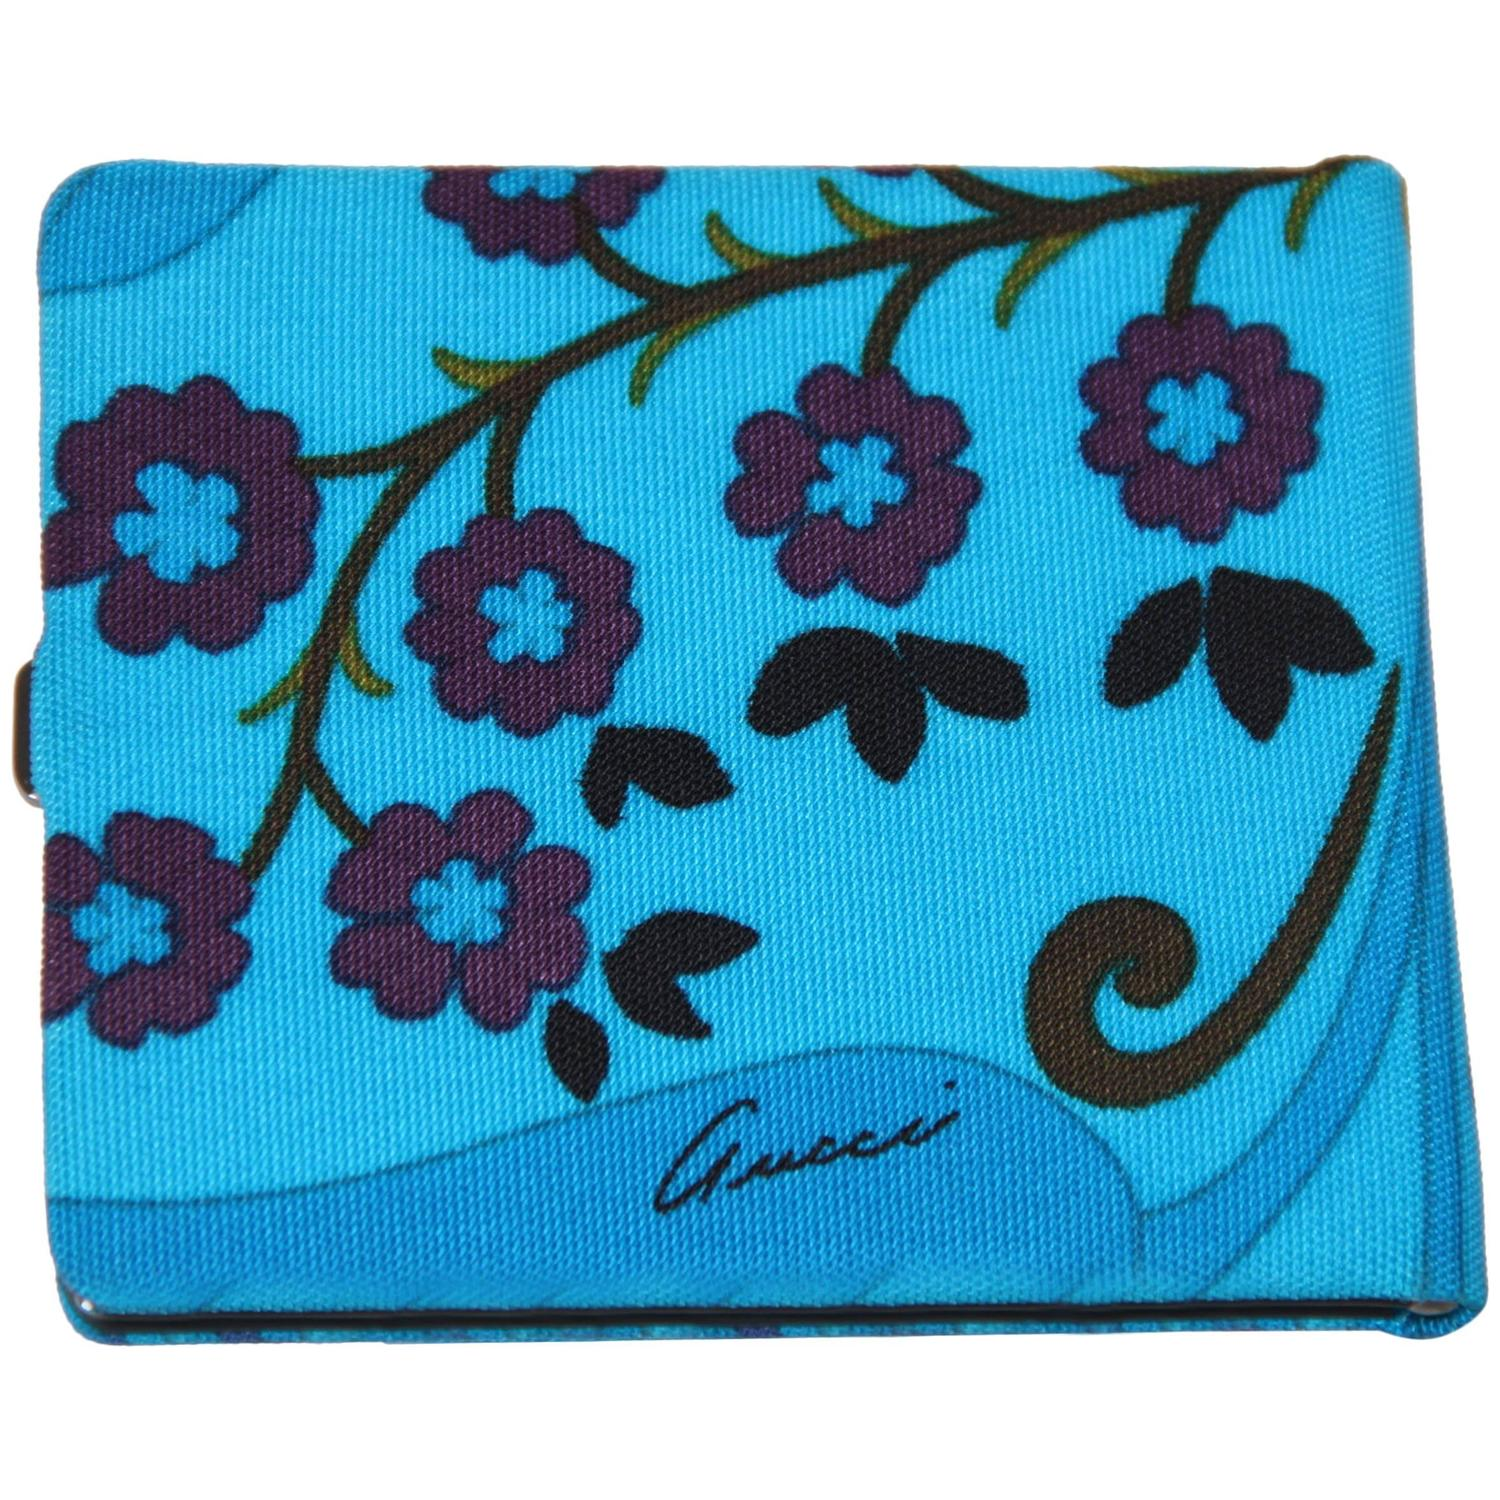 GUCCI Turquoise Canvas CIGARETTE CASE Holder w/ BOX For Sale at ...